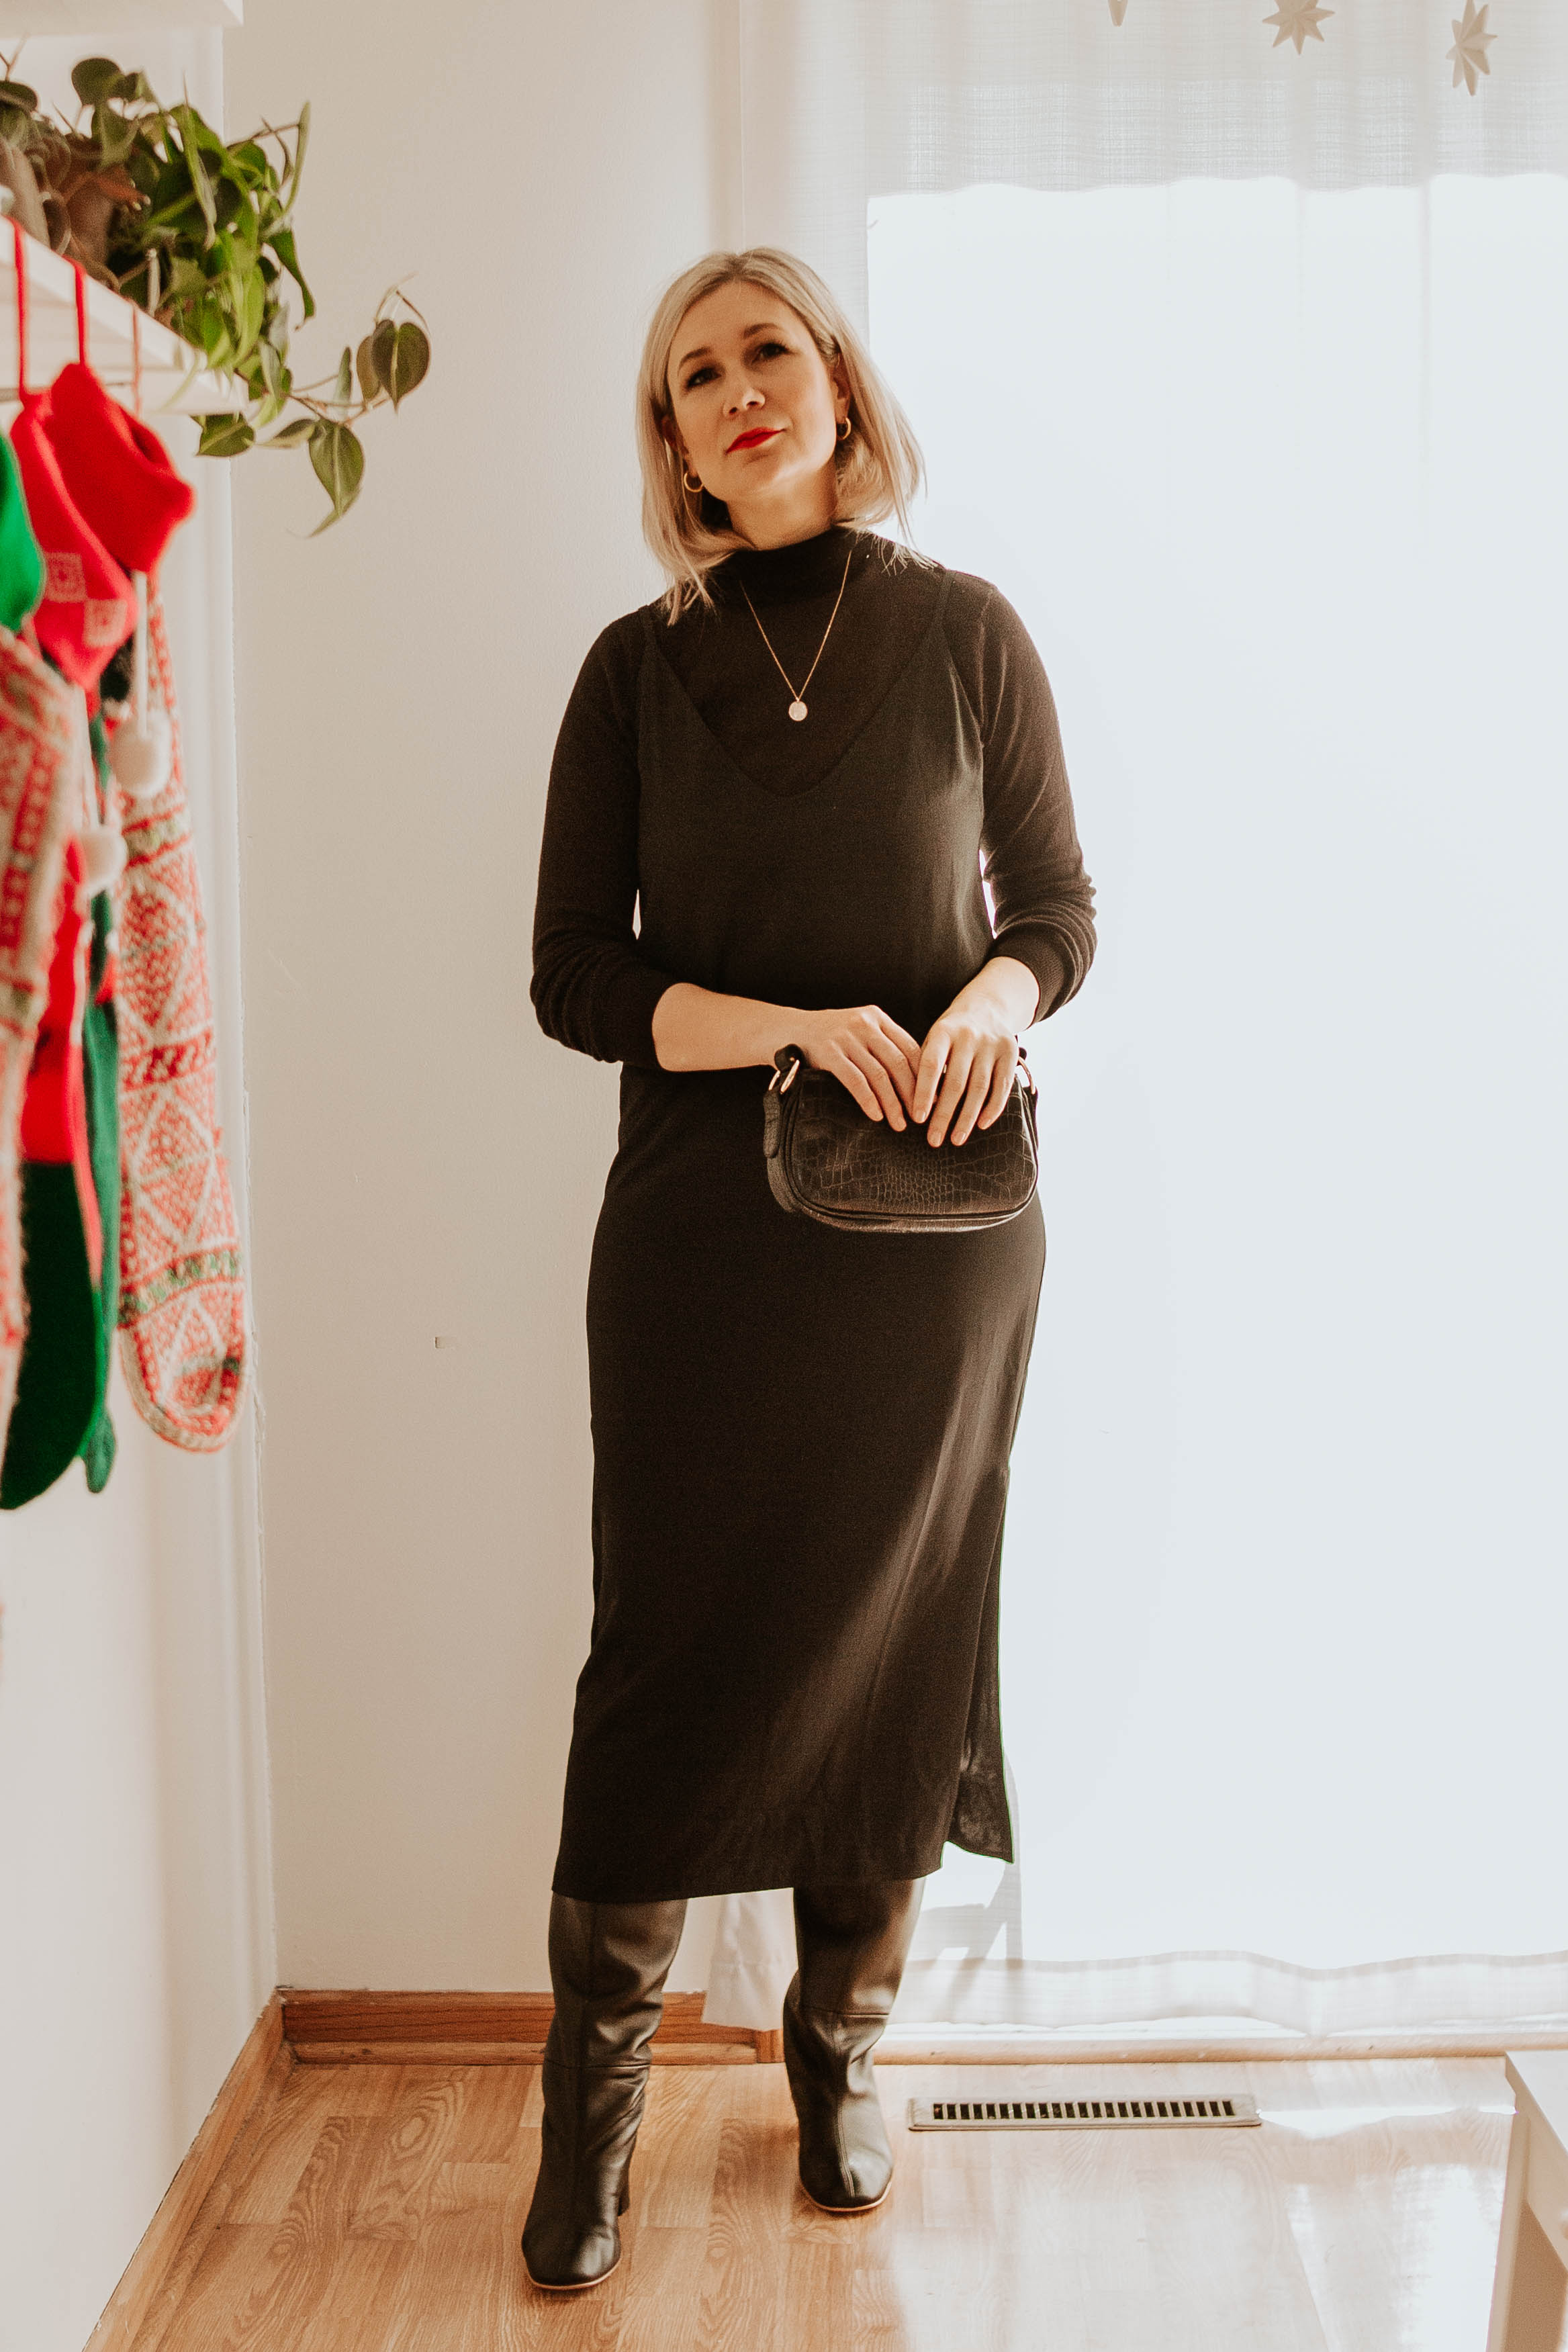 Mini Holiday Lookbook Featuring Ethical Fashion, black turtleneck sweater, everlane slip dress, black knee high boots, everlane knee high boots, mini croc bag